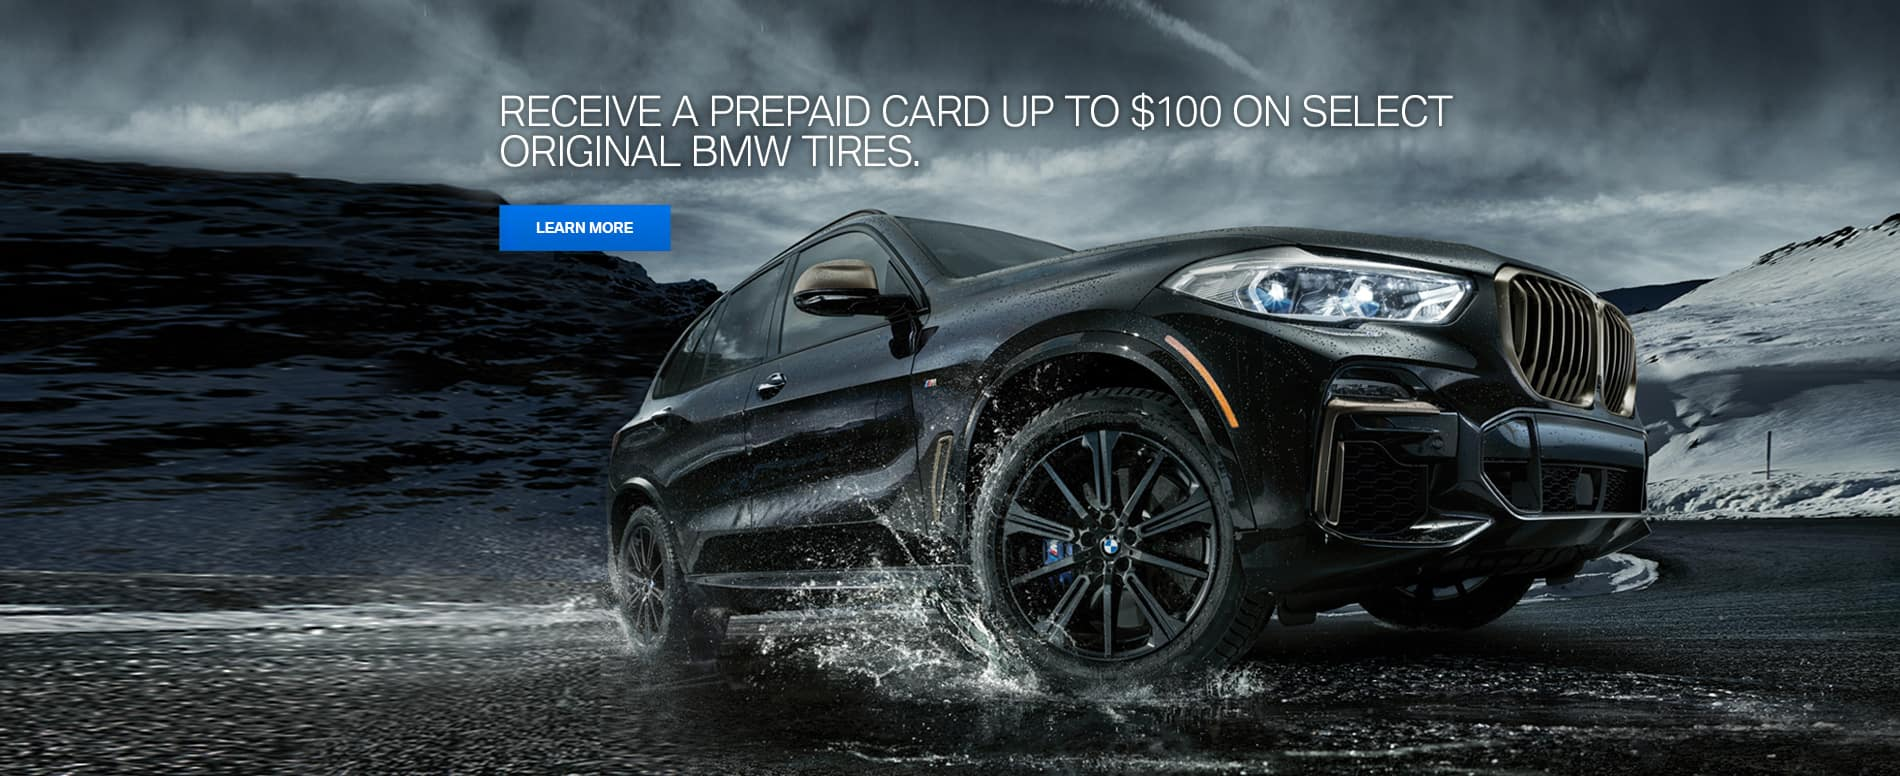 Bmw Dealers Long Island >> Bmw Of Bayside Bmw Dealer In Douglaston Ny